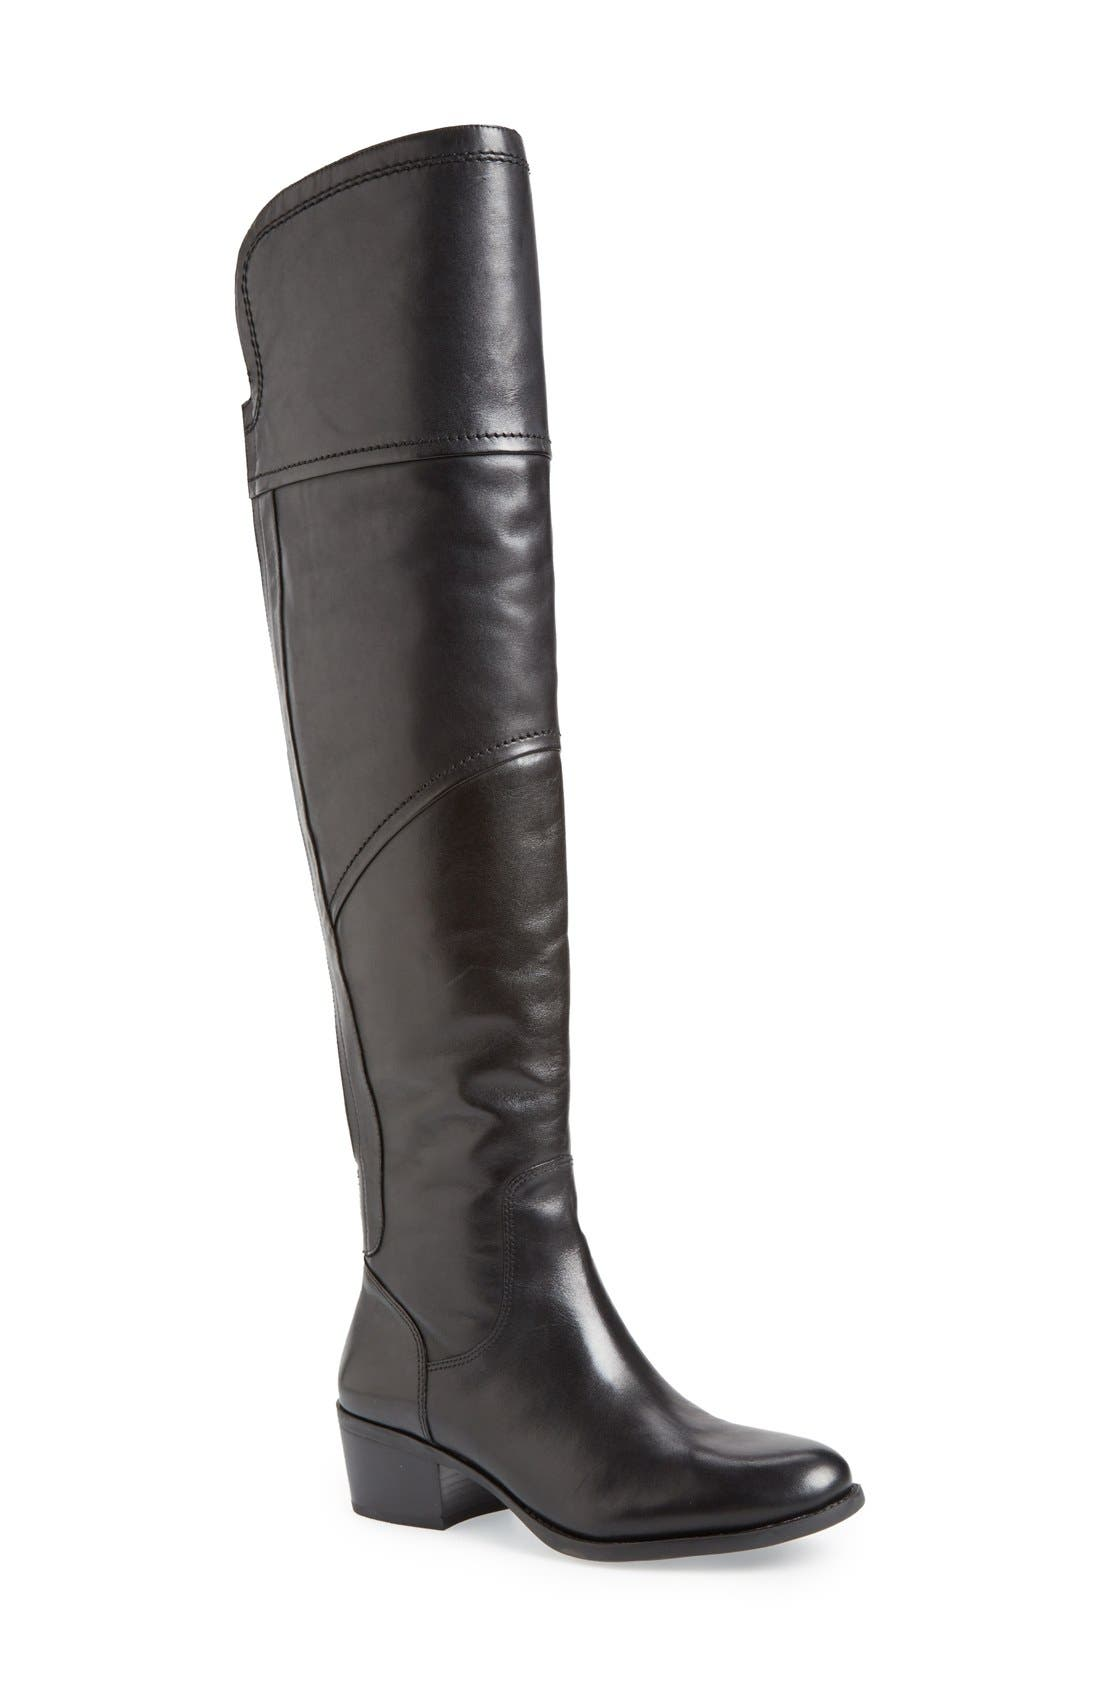 VINCE CAMUTO, 'Bernadine' Over the Knee Boot, Main thumbnail 1, color, 001